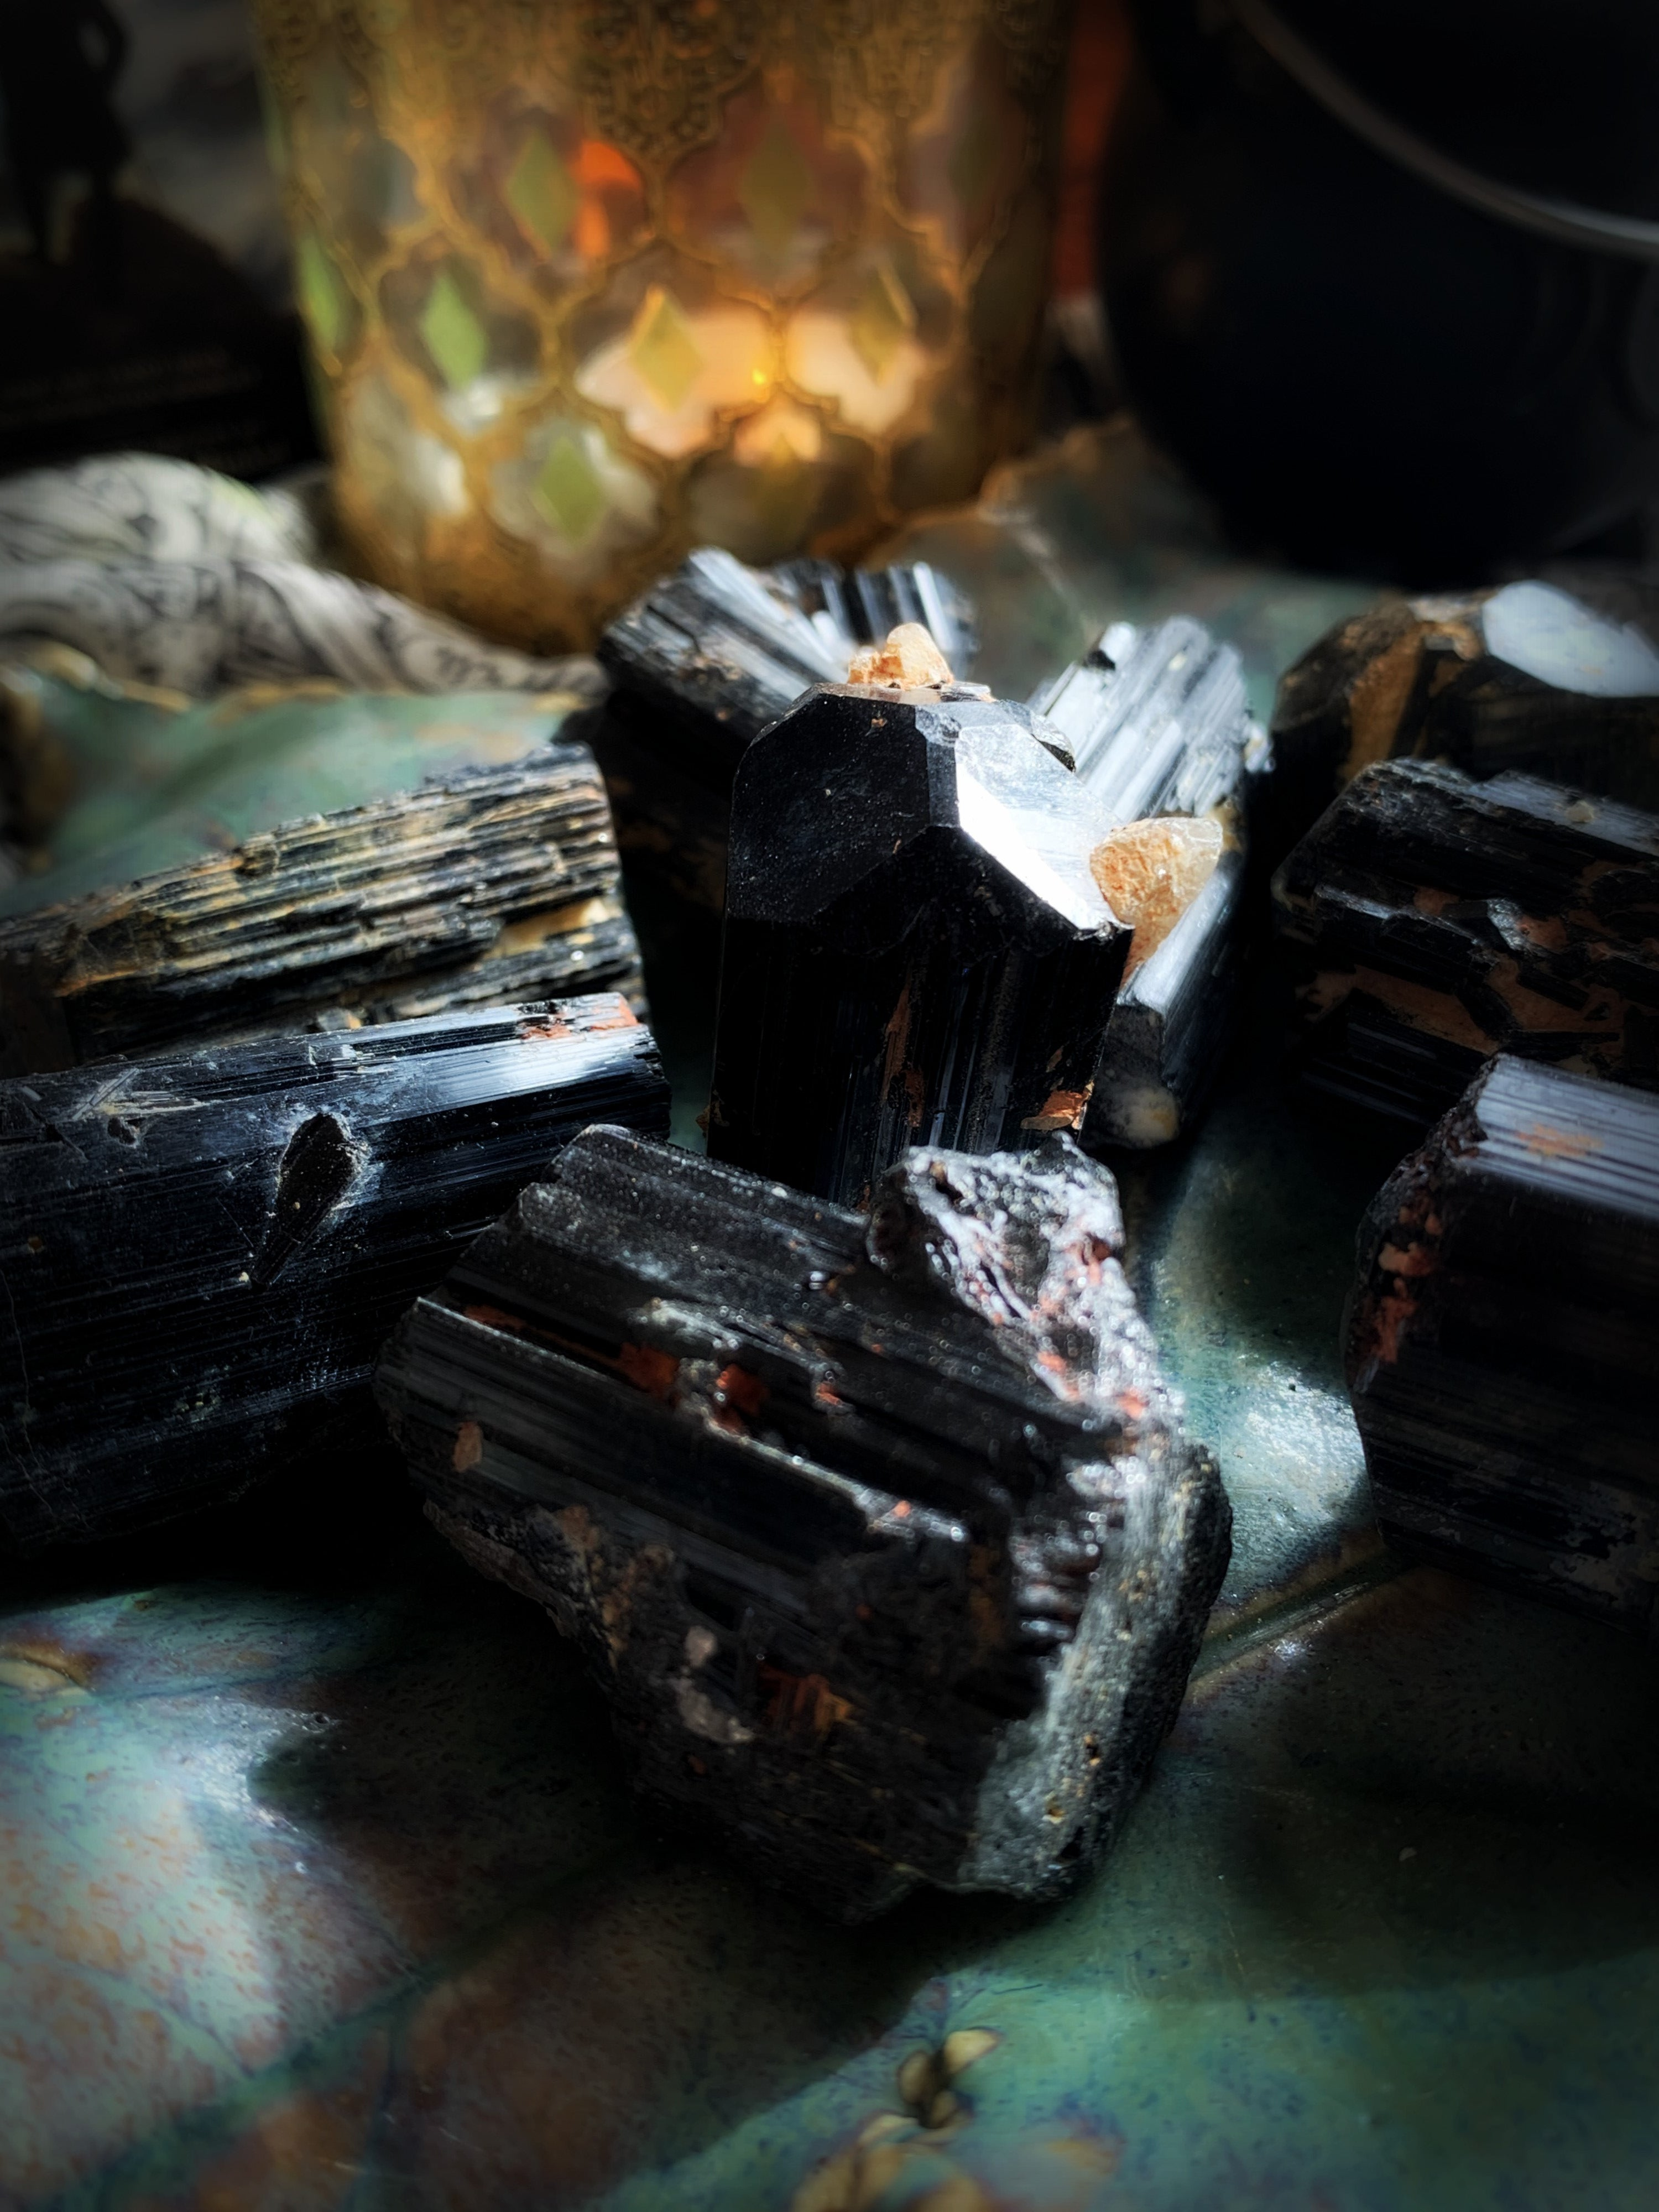 BLACK TOURMALINE ~ For Grounding Spiritual Energy and Transmuting Negative Thought Patterns